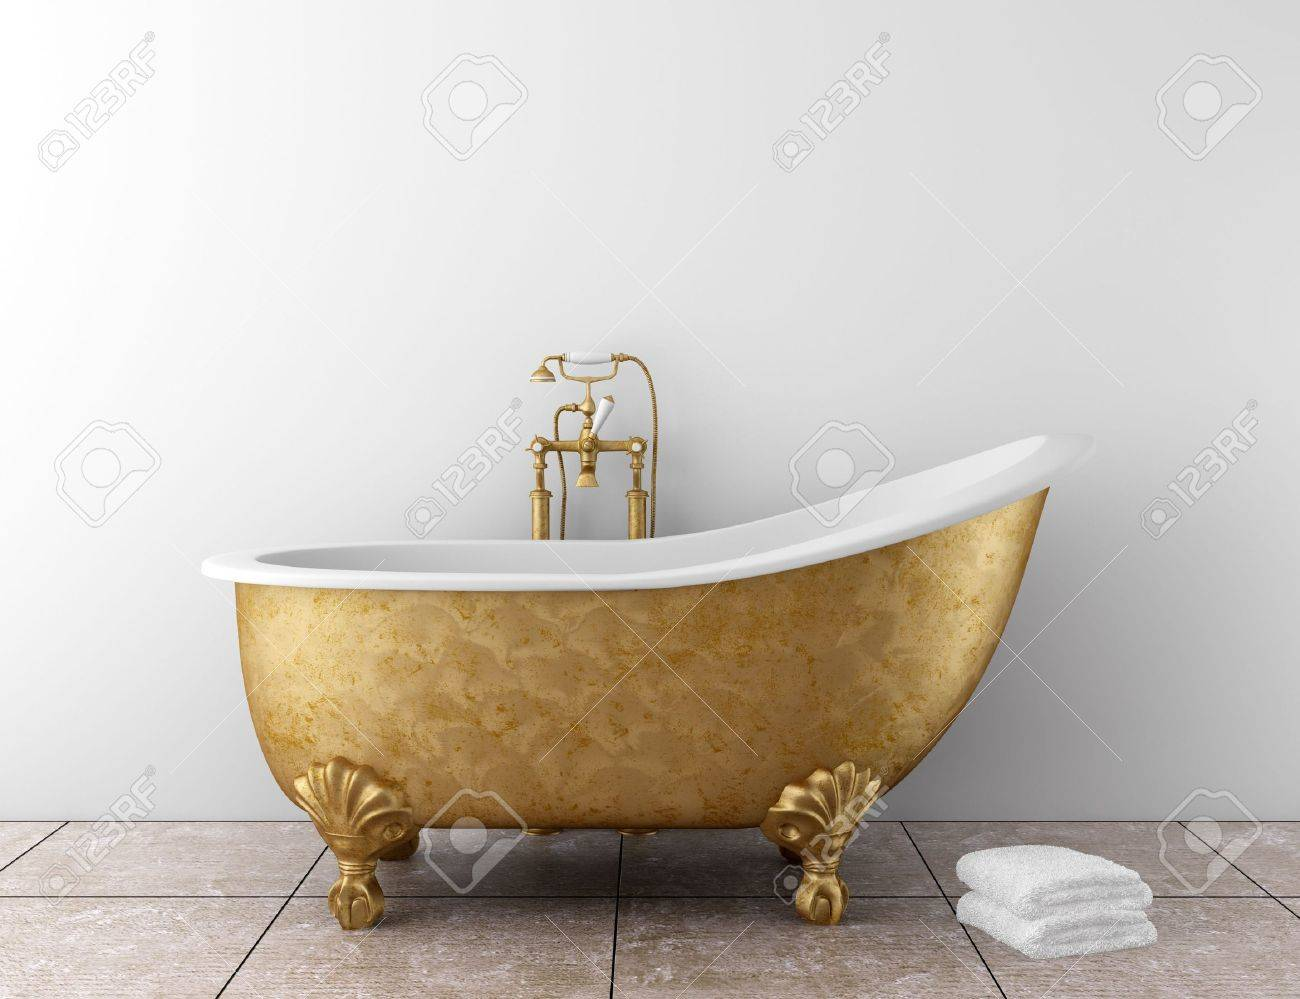 Classic Bathroom With Old Bathtub And White Wall Stock Photo   7174811